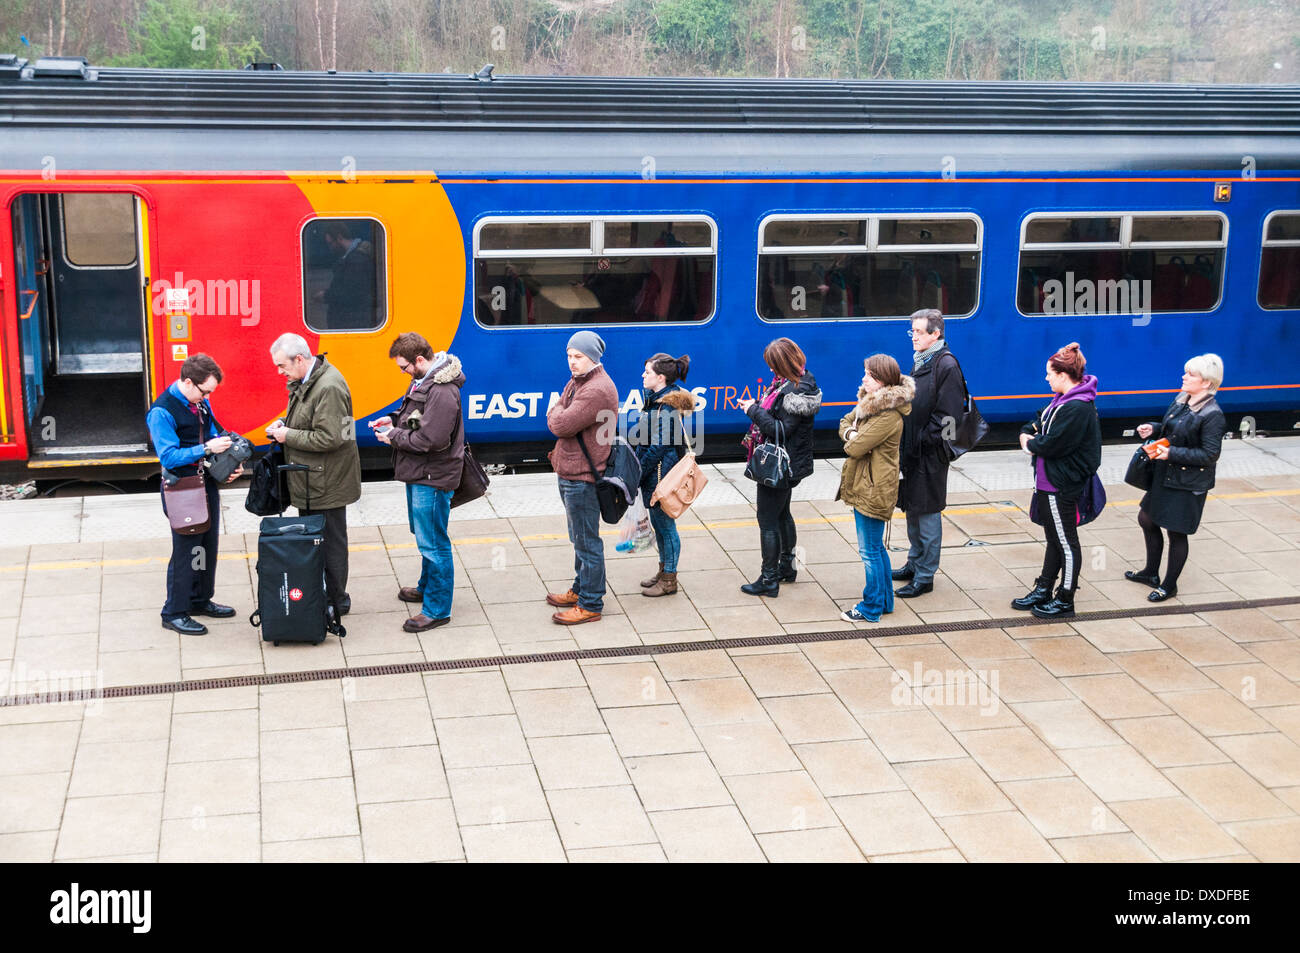 A queue of people getting tickets from a train guard on the platform at Leicester station before boarding an East Midlands Train - Stock Image